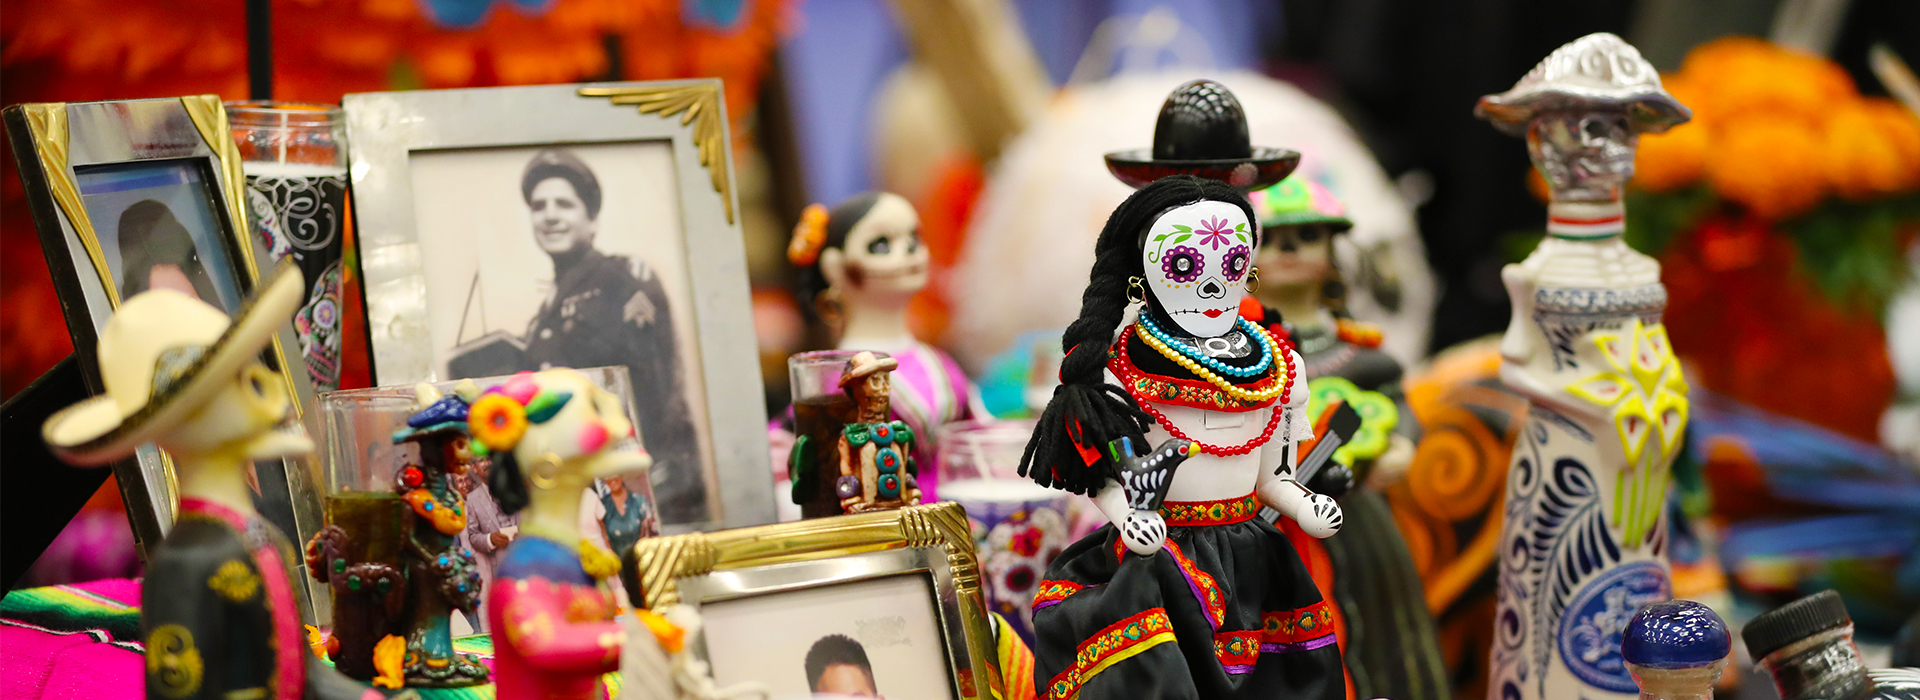 Cancelled: CSUSB will host a Day of the Dead – Dia de los Muertos – celebration Nov. 2